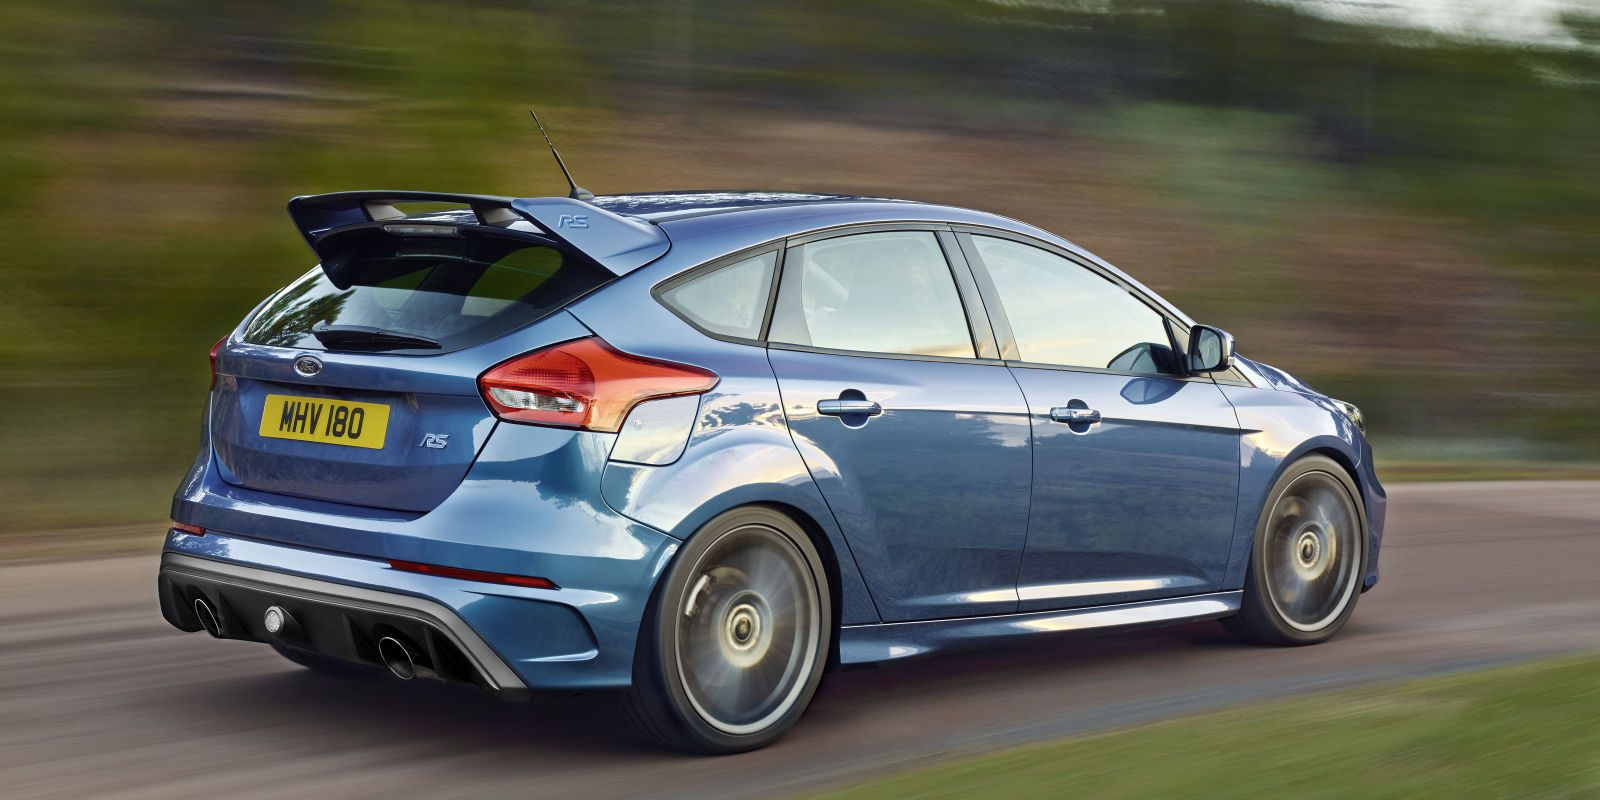 2016 Ford Focus Rs Hits 60 In Just 4 7 Seconds Starts At 36 605 Ford Focus Focus Rs Ford Focus 4